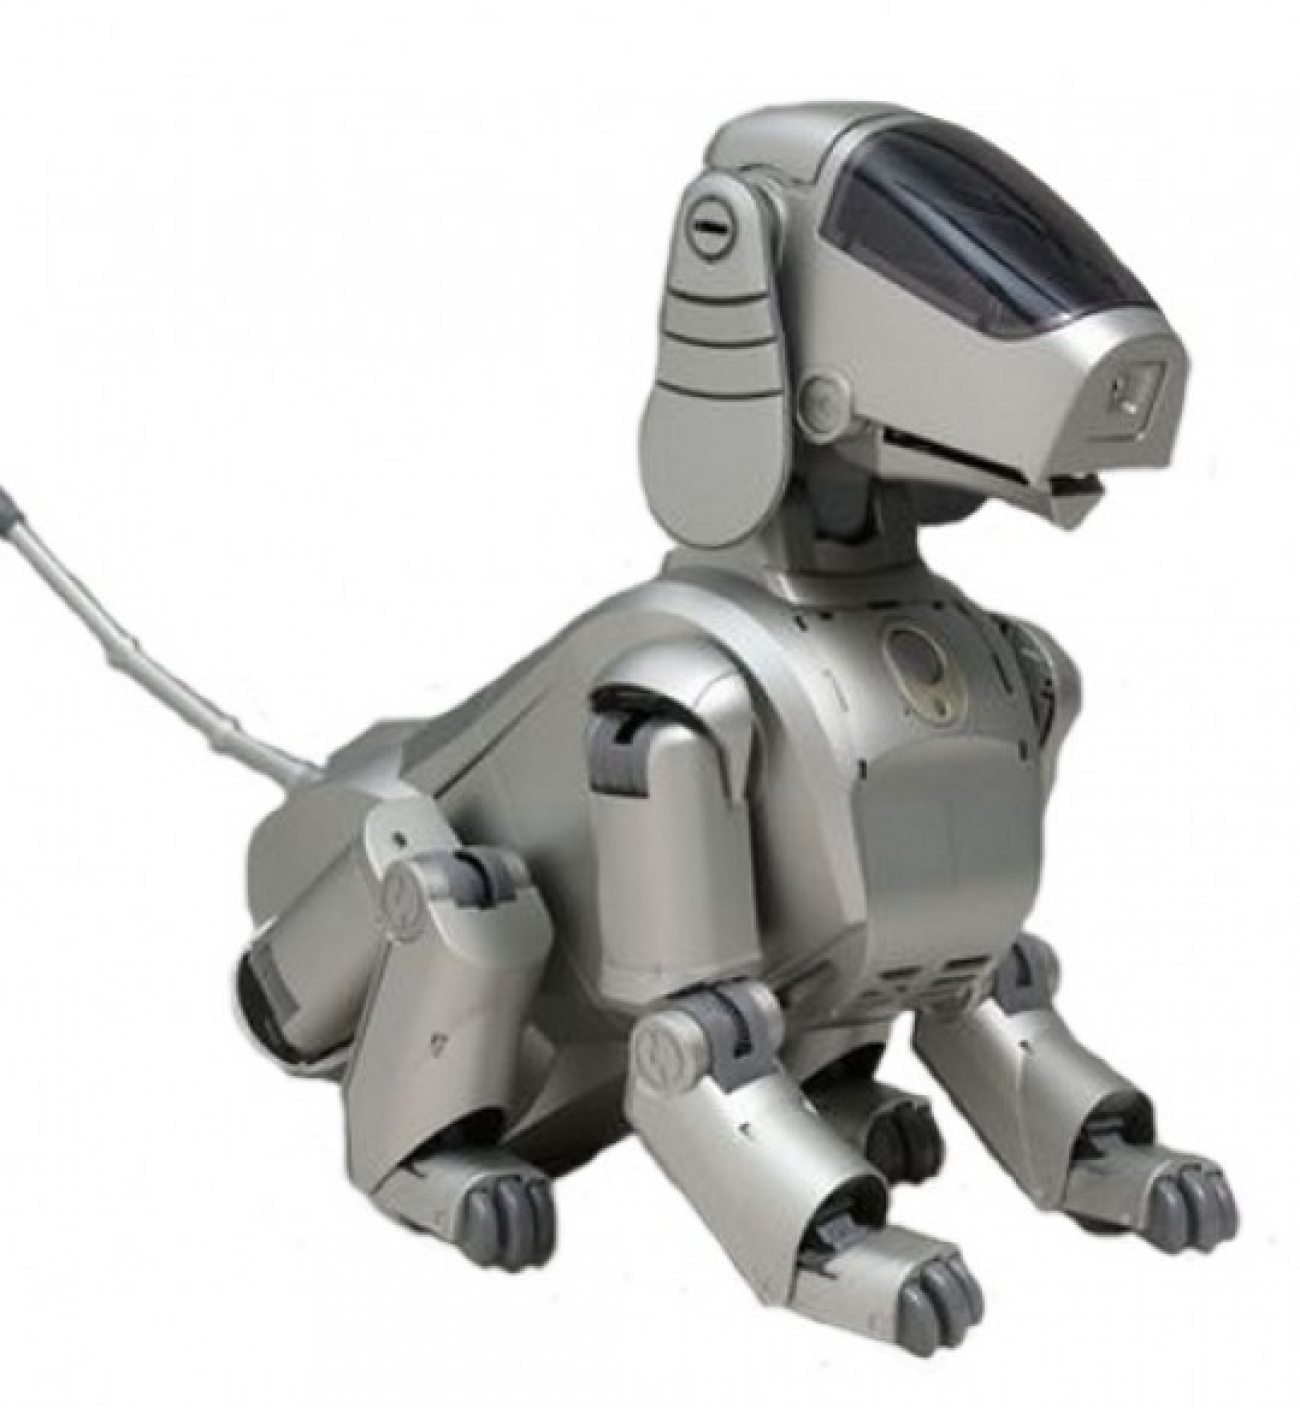 The Sony Aibo ERS-110